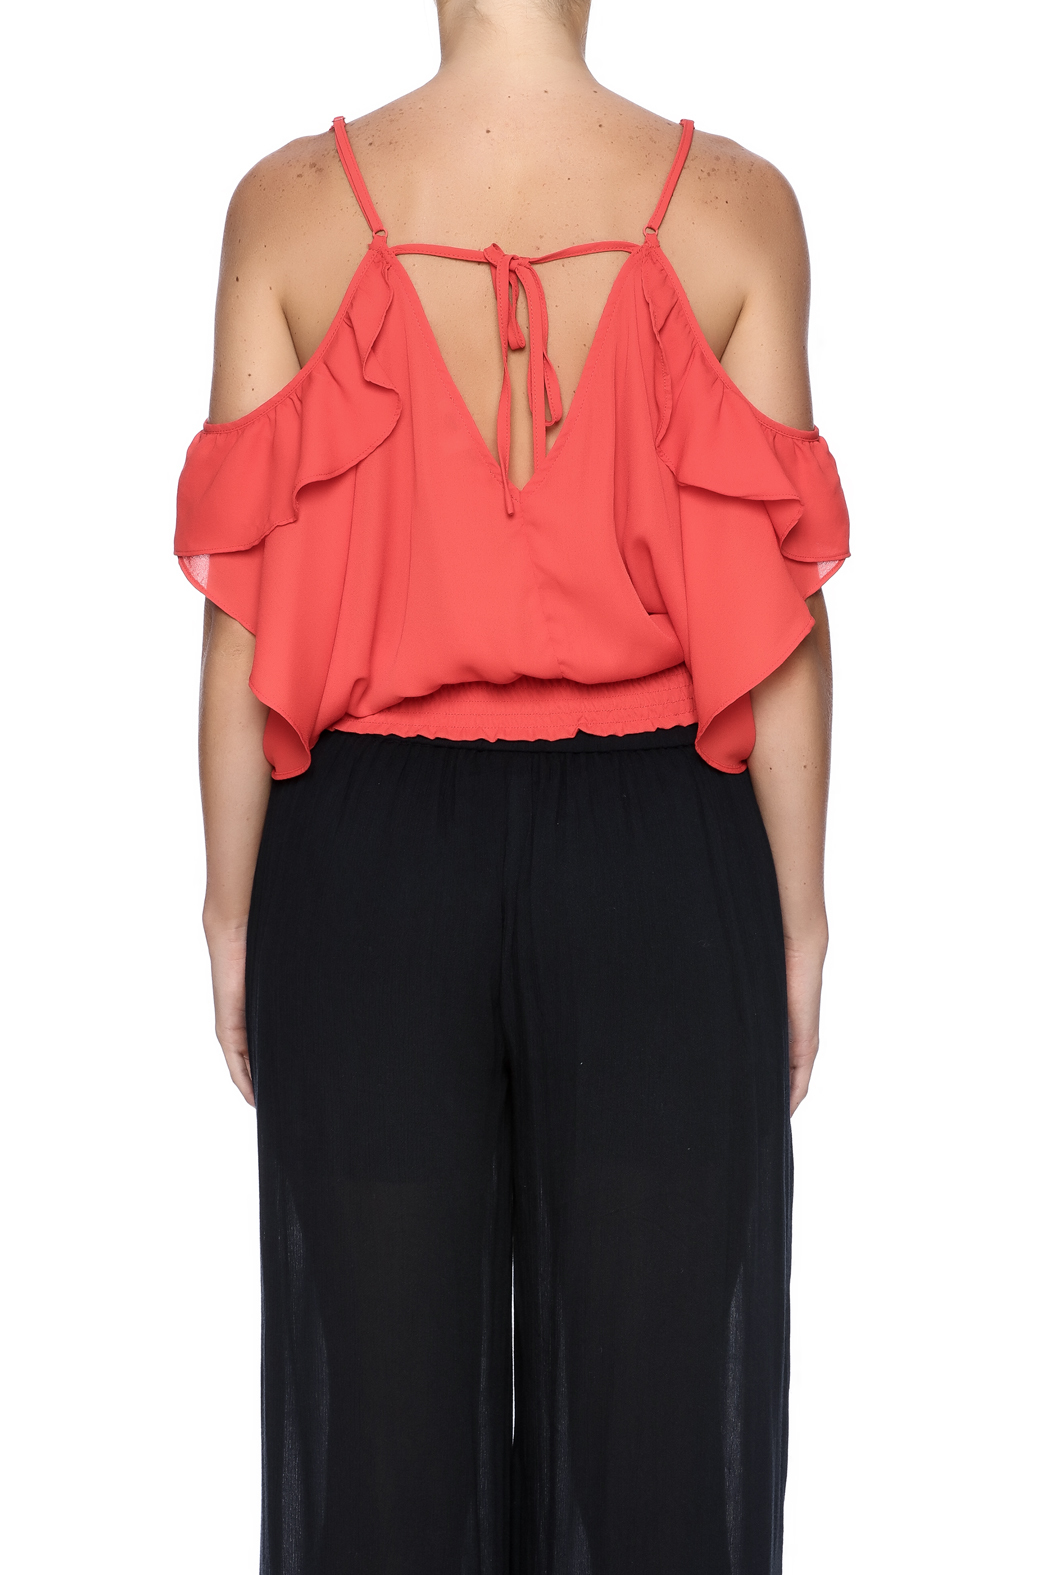 Jealous Tomato Tomato Ruffle Top - Back Cropped Image